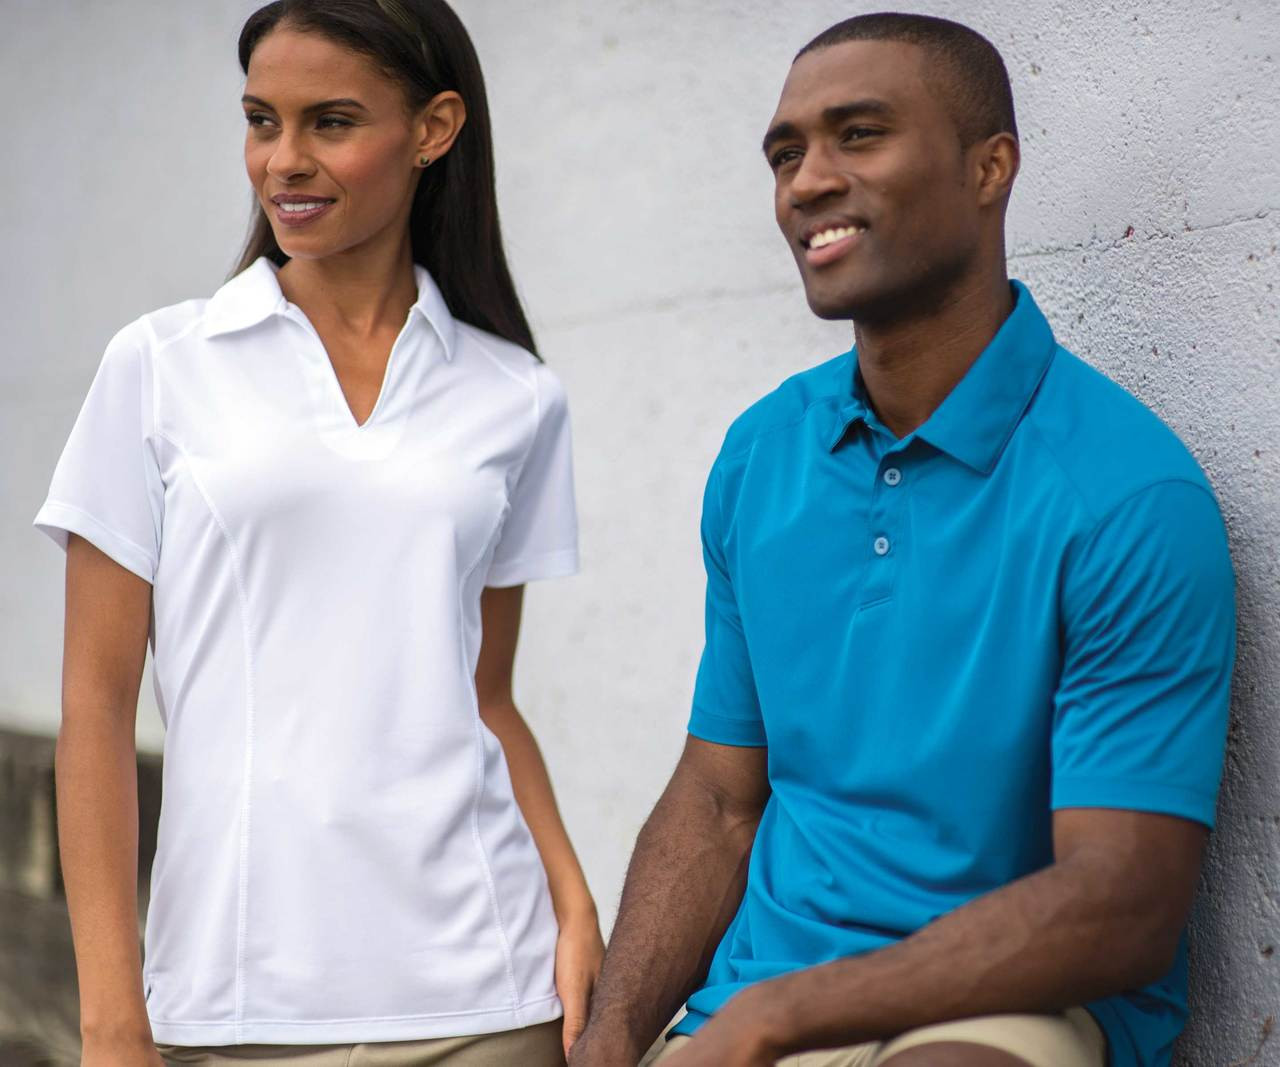 Great Employee Polo for hot weather